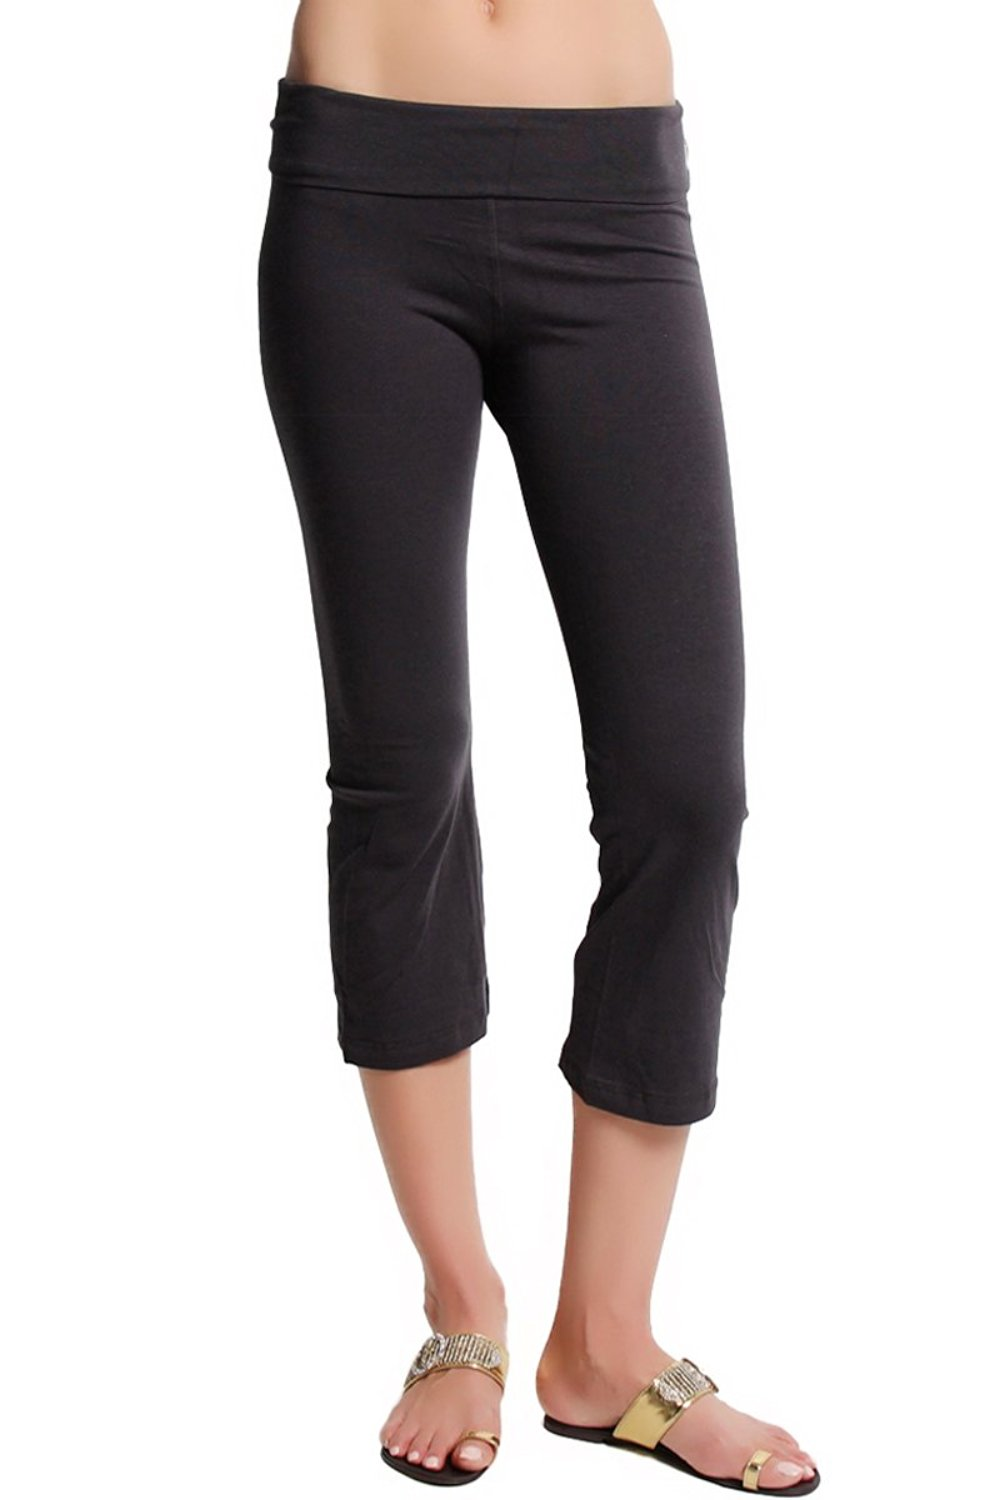 05a66545d962e TheMogan Women's Fold Over Stretchy Crop Yoga Workout Legging Flare Capri  Pant